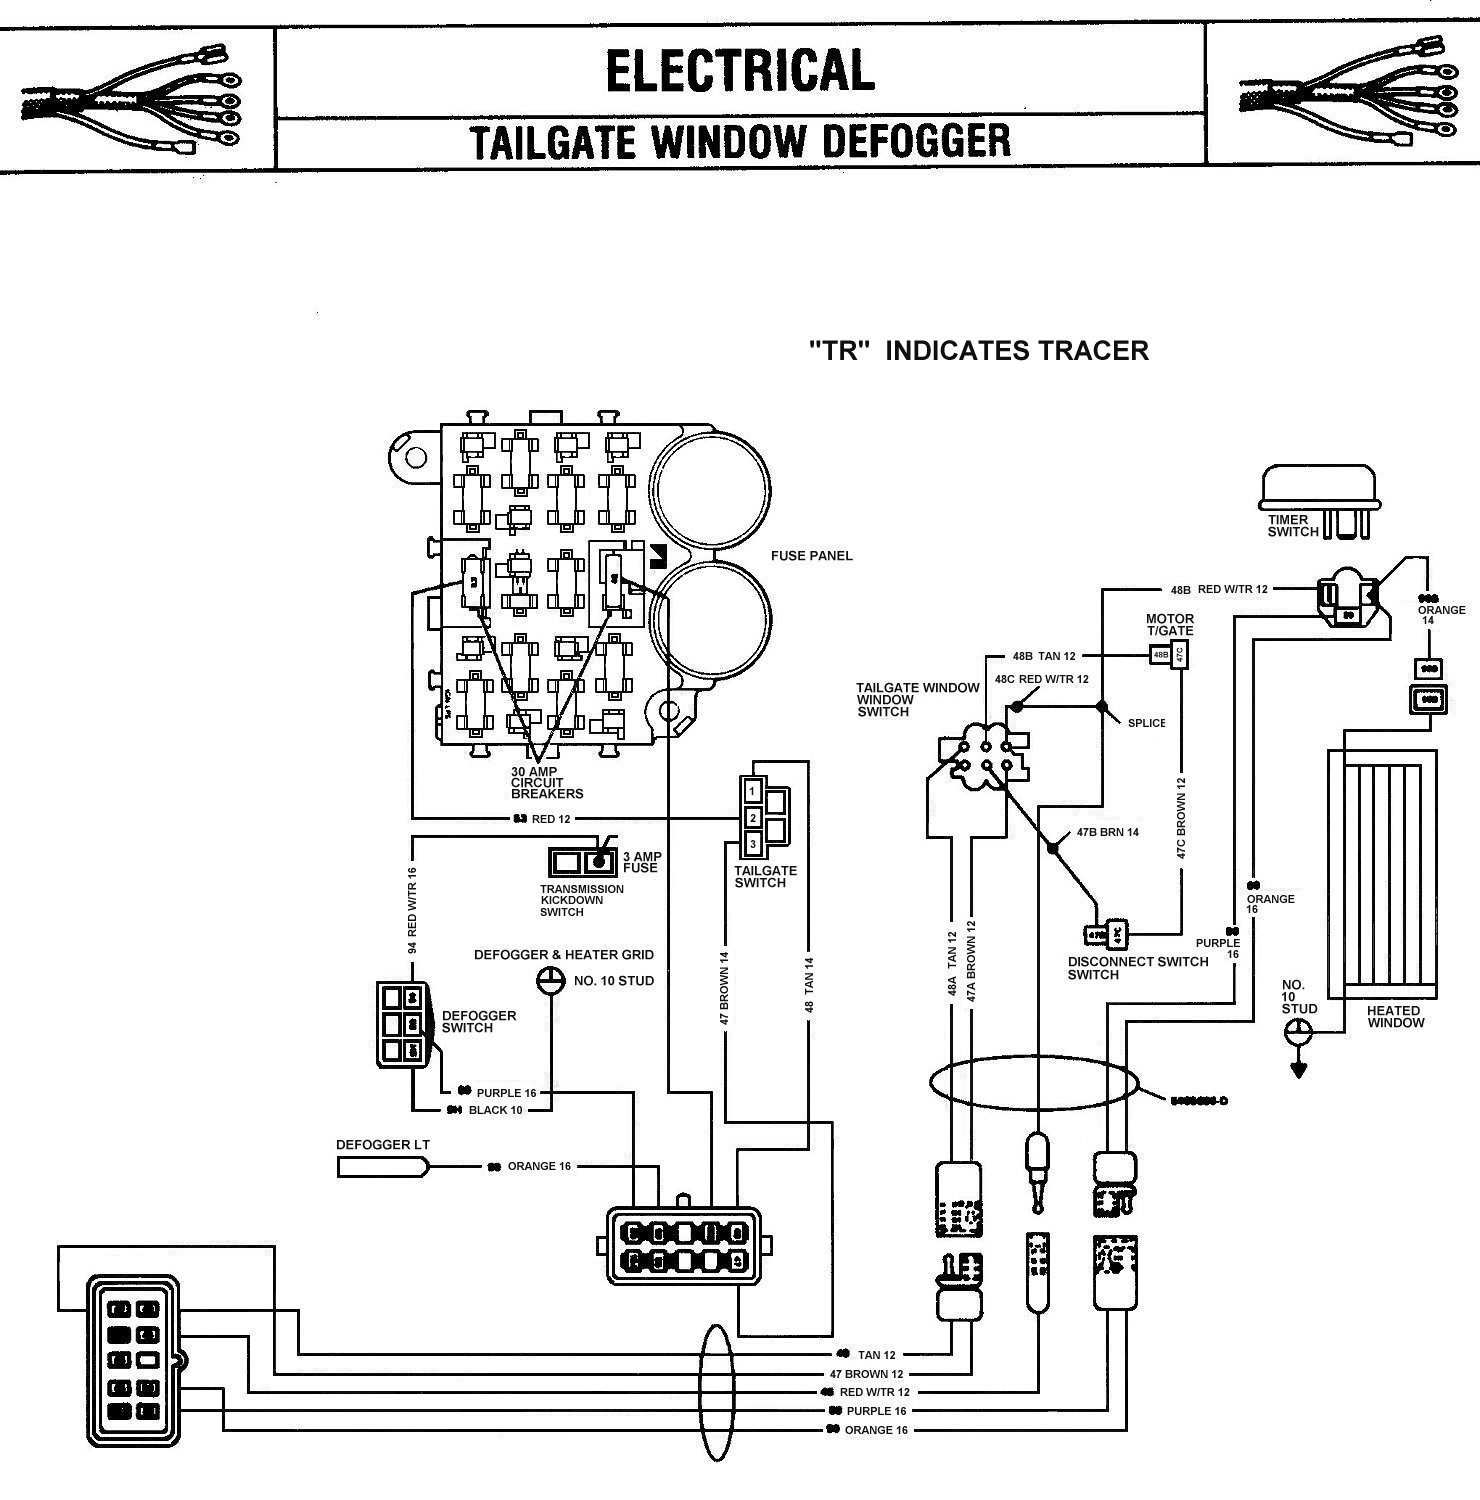 hight resolution of 2008 hummer h3 wiring diagram